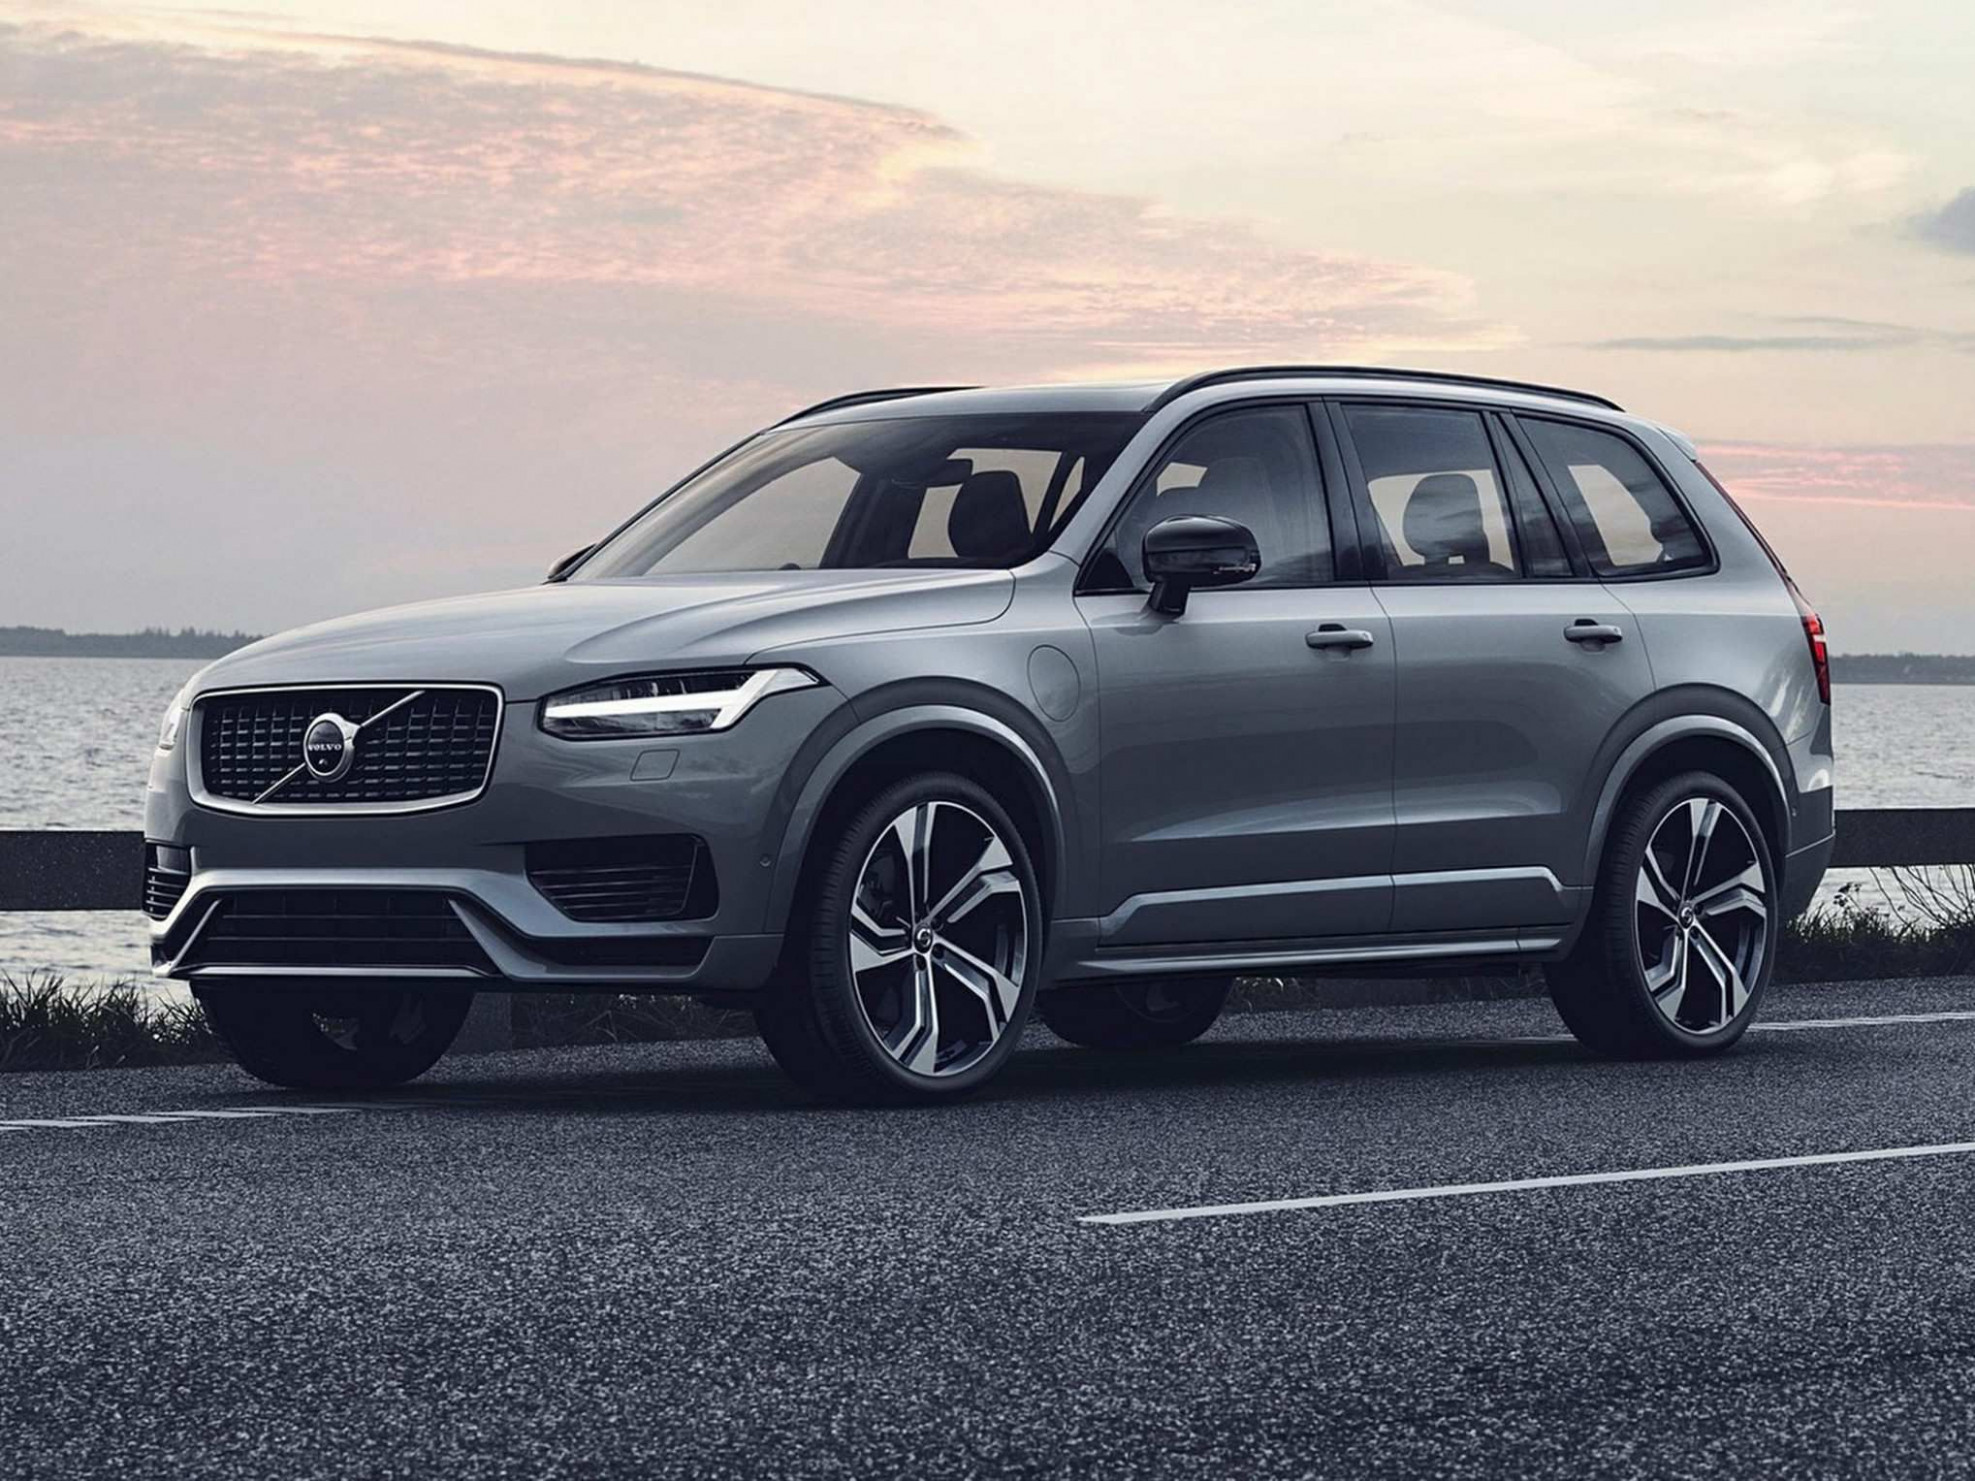 11 volvo build and price Overview and Price 11*11 - 11 volvo ..